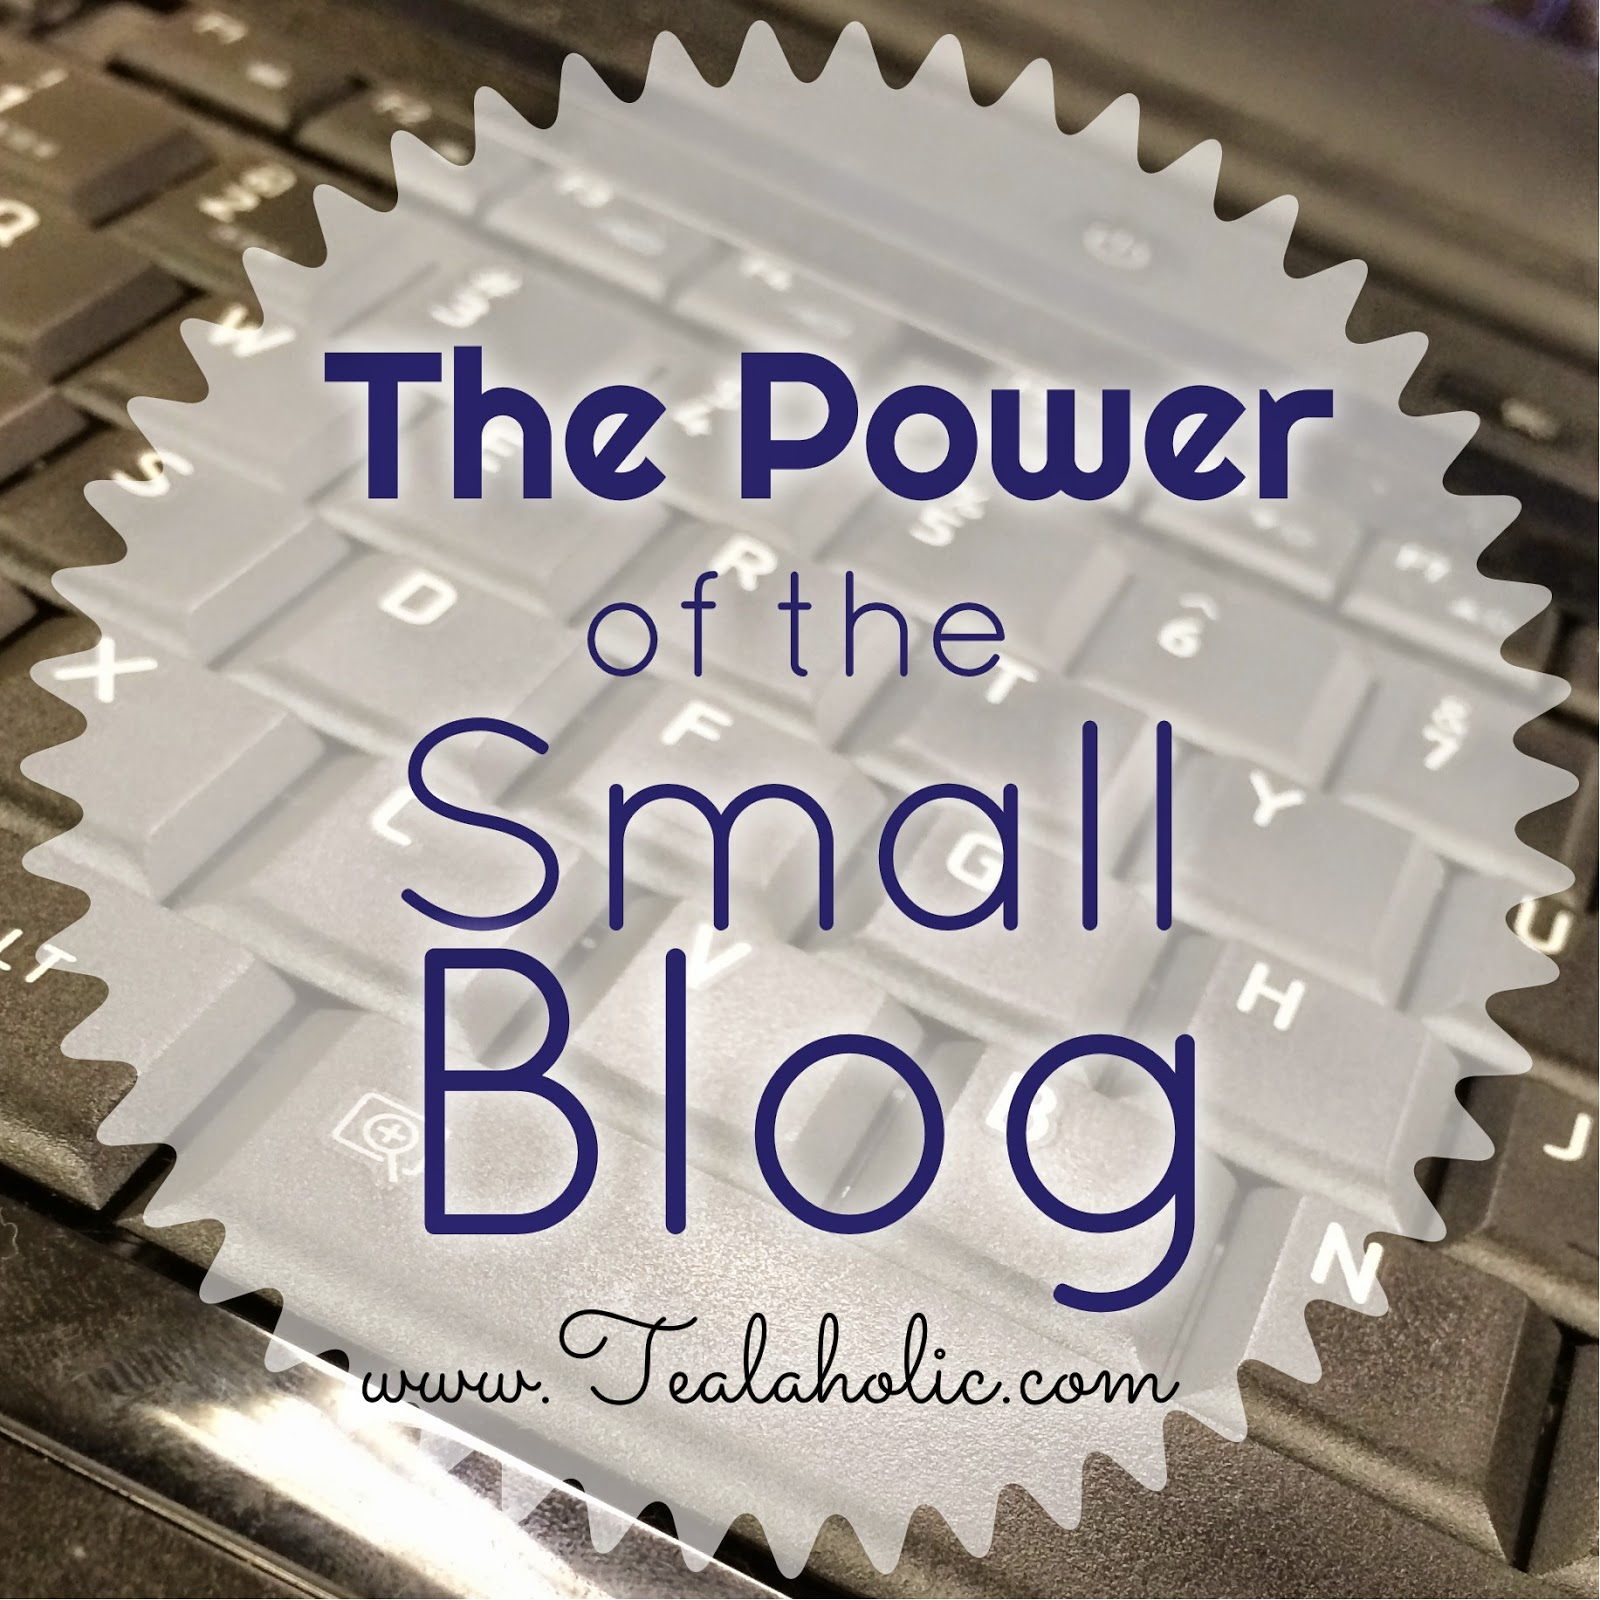 Why Your Small Blog Has Power in Sponsorships